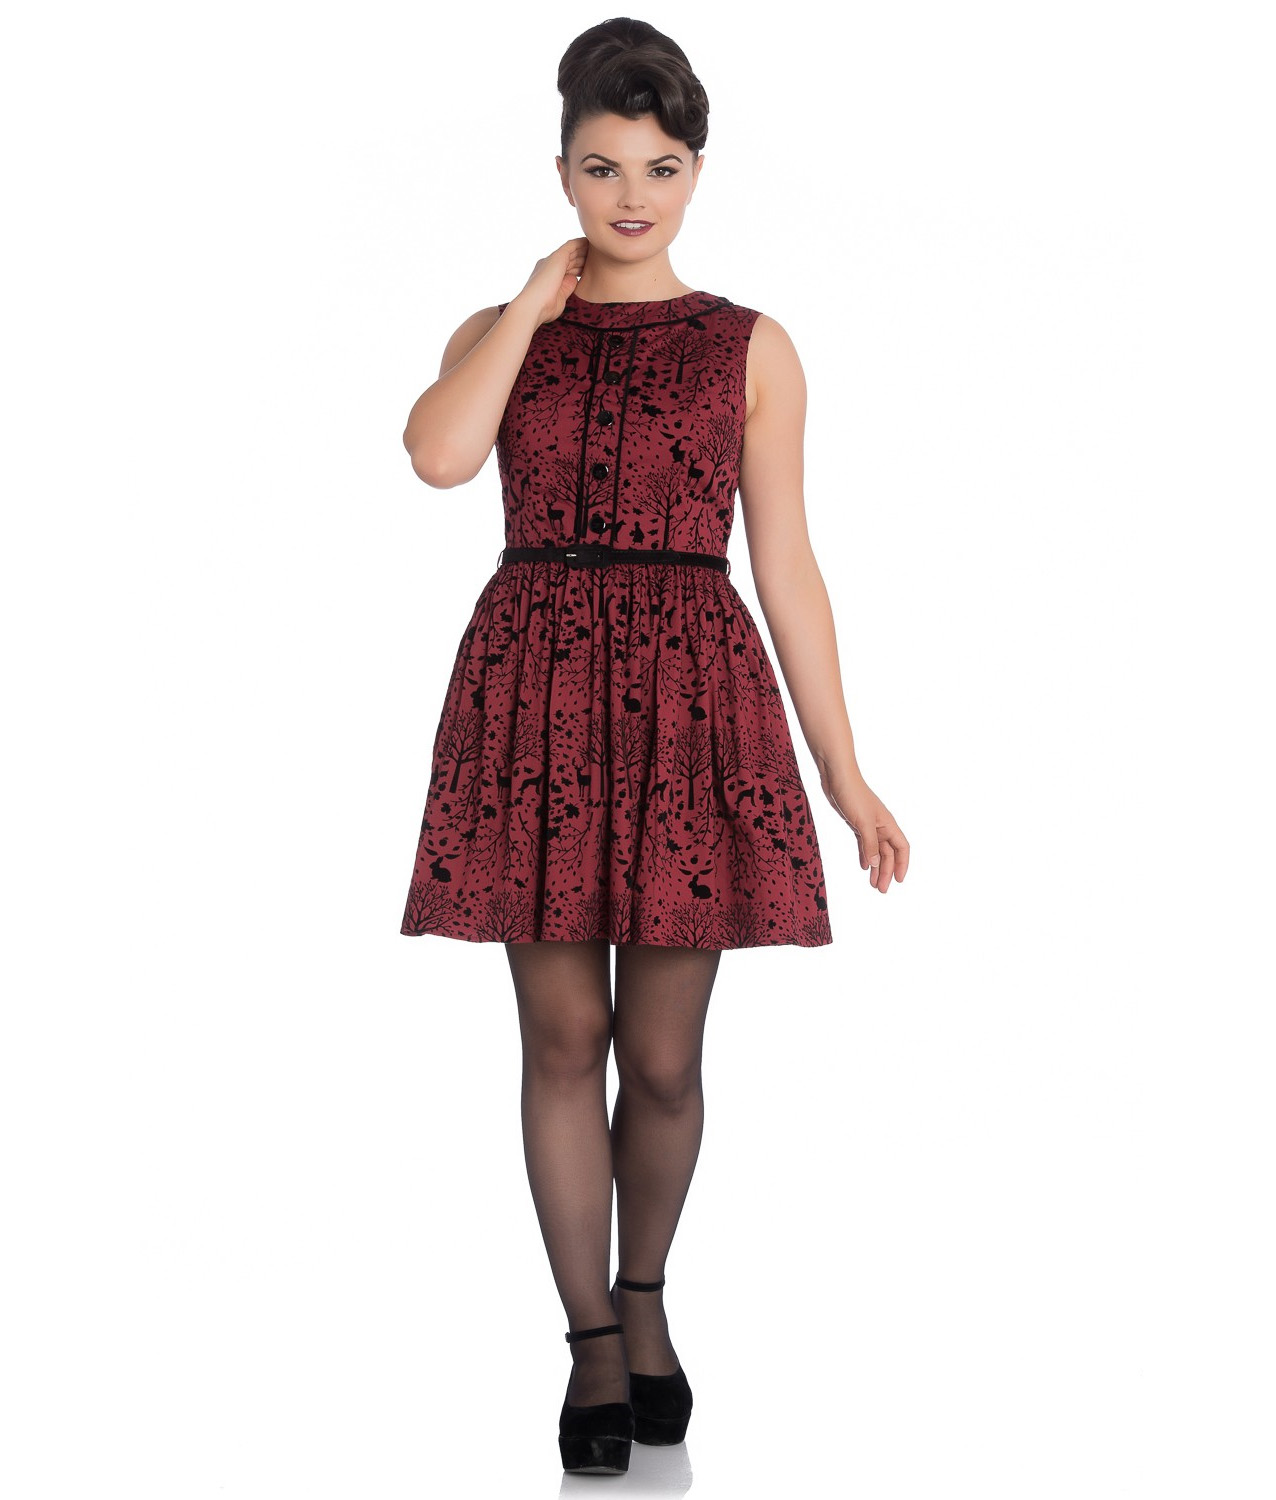 Hell-Bunny-50s-Mini-Skater-Dress-Woodland-Trees-SHERWOOD-Black-Red-All-Sizes thumbnail 23